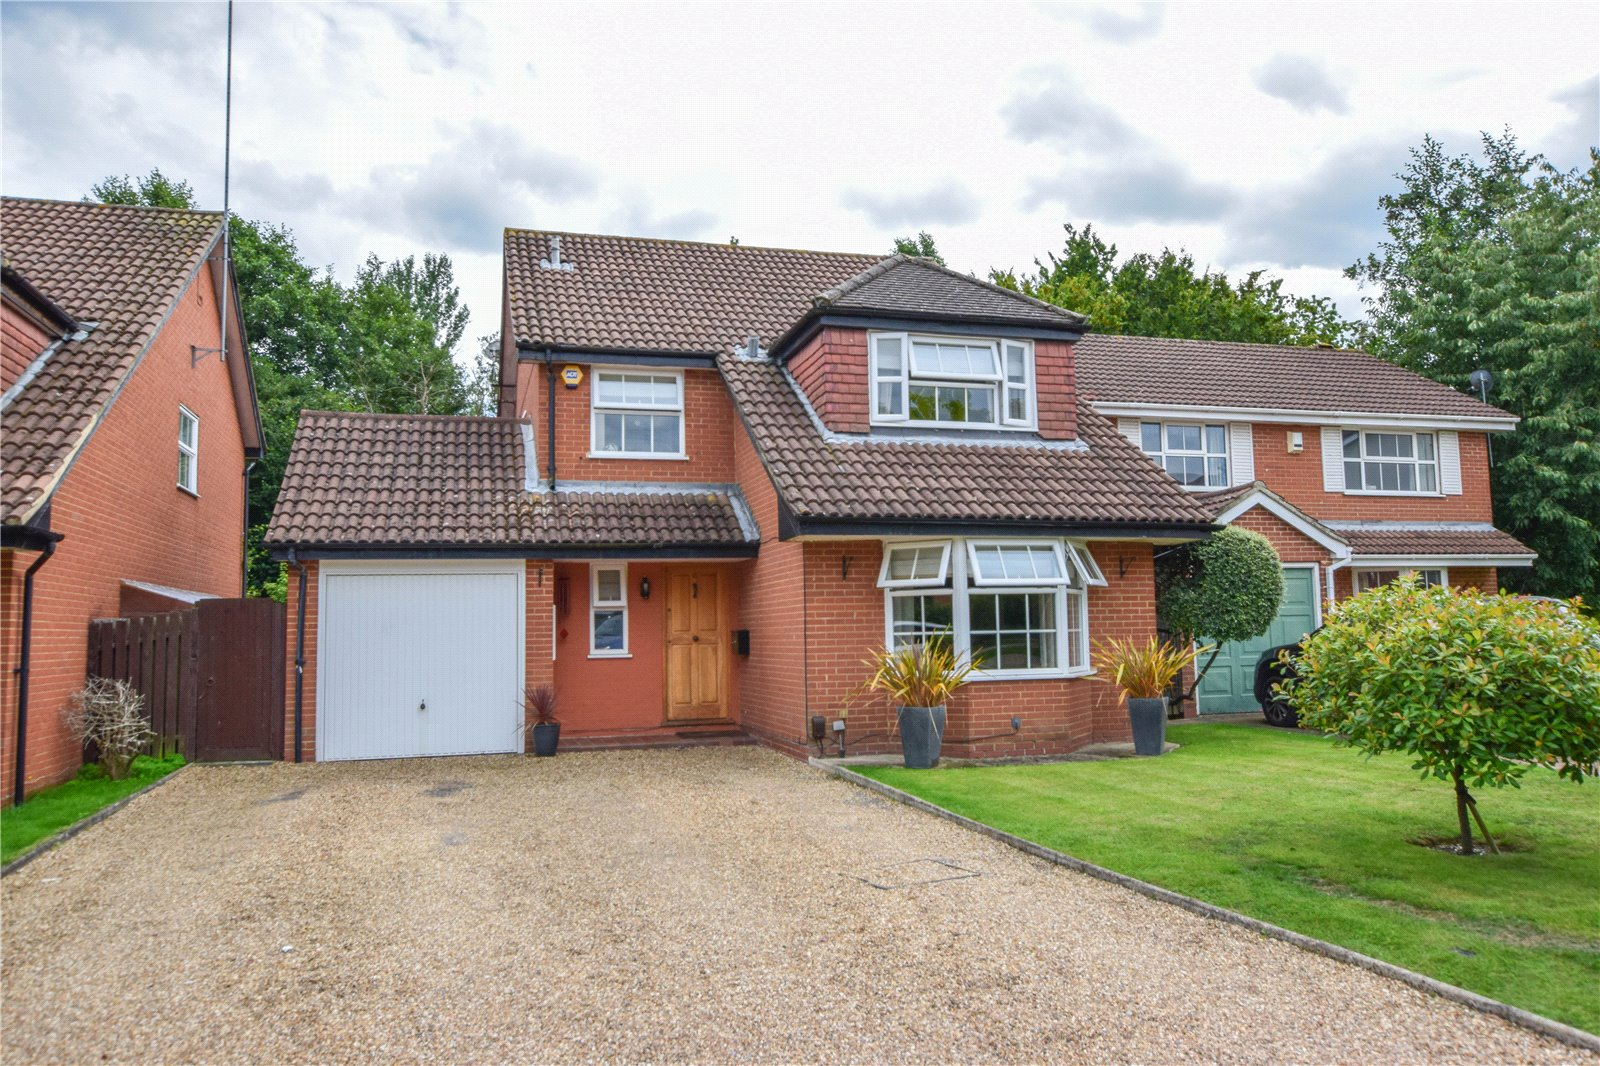 4 Bedrooms Detached House for sale in Rhodes Close, Earley, Reading, Berkshire, RG6